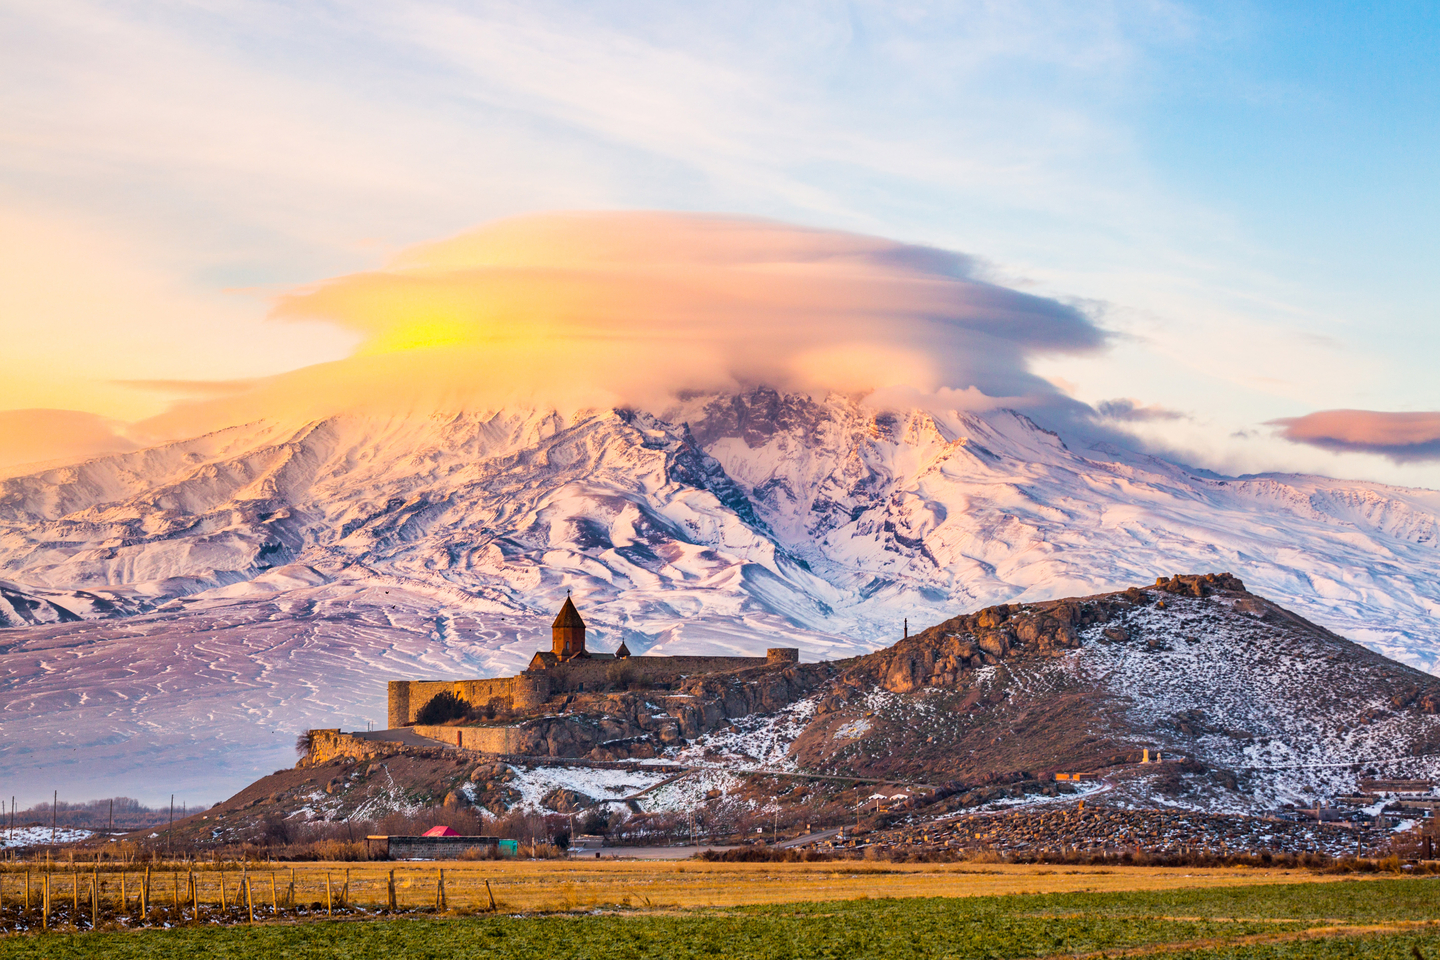 Mount Ararat in Armenia. Sunrise over Ararat in Armenia with Khor Virap Monastery